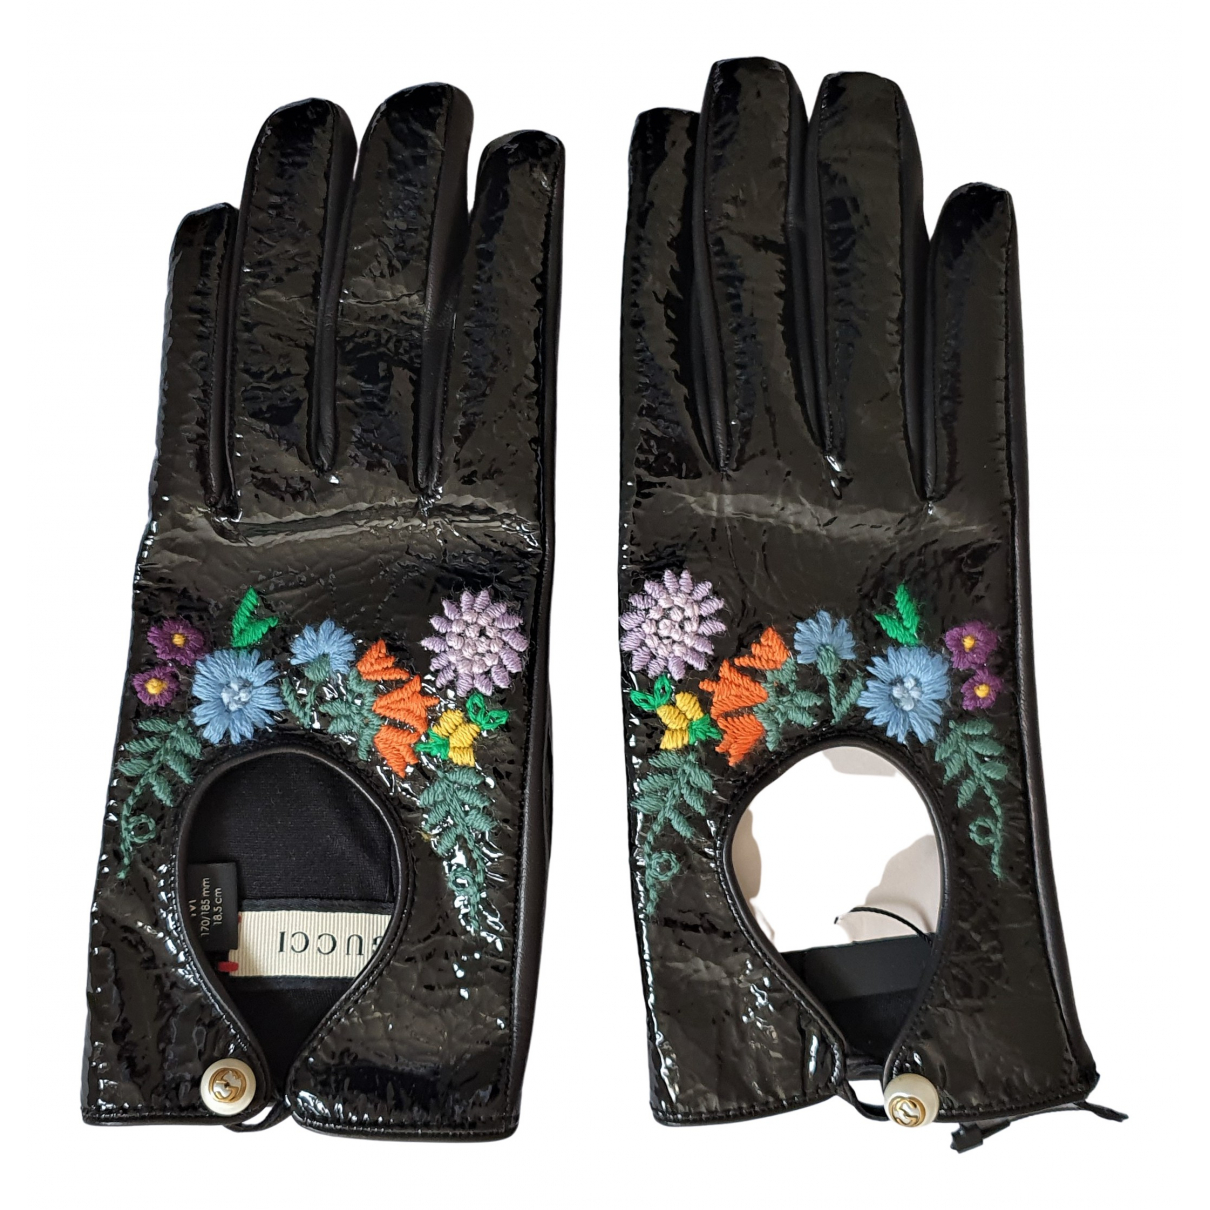 Gucci \N Black Leather Gloves for Women M International